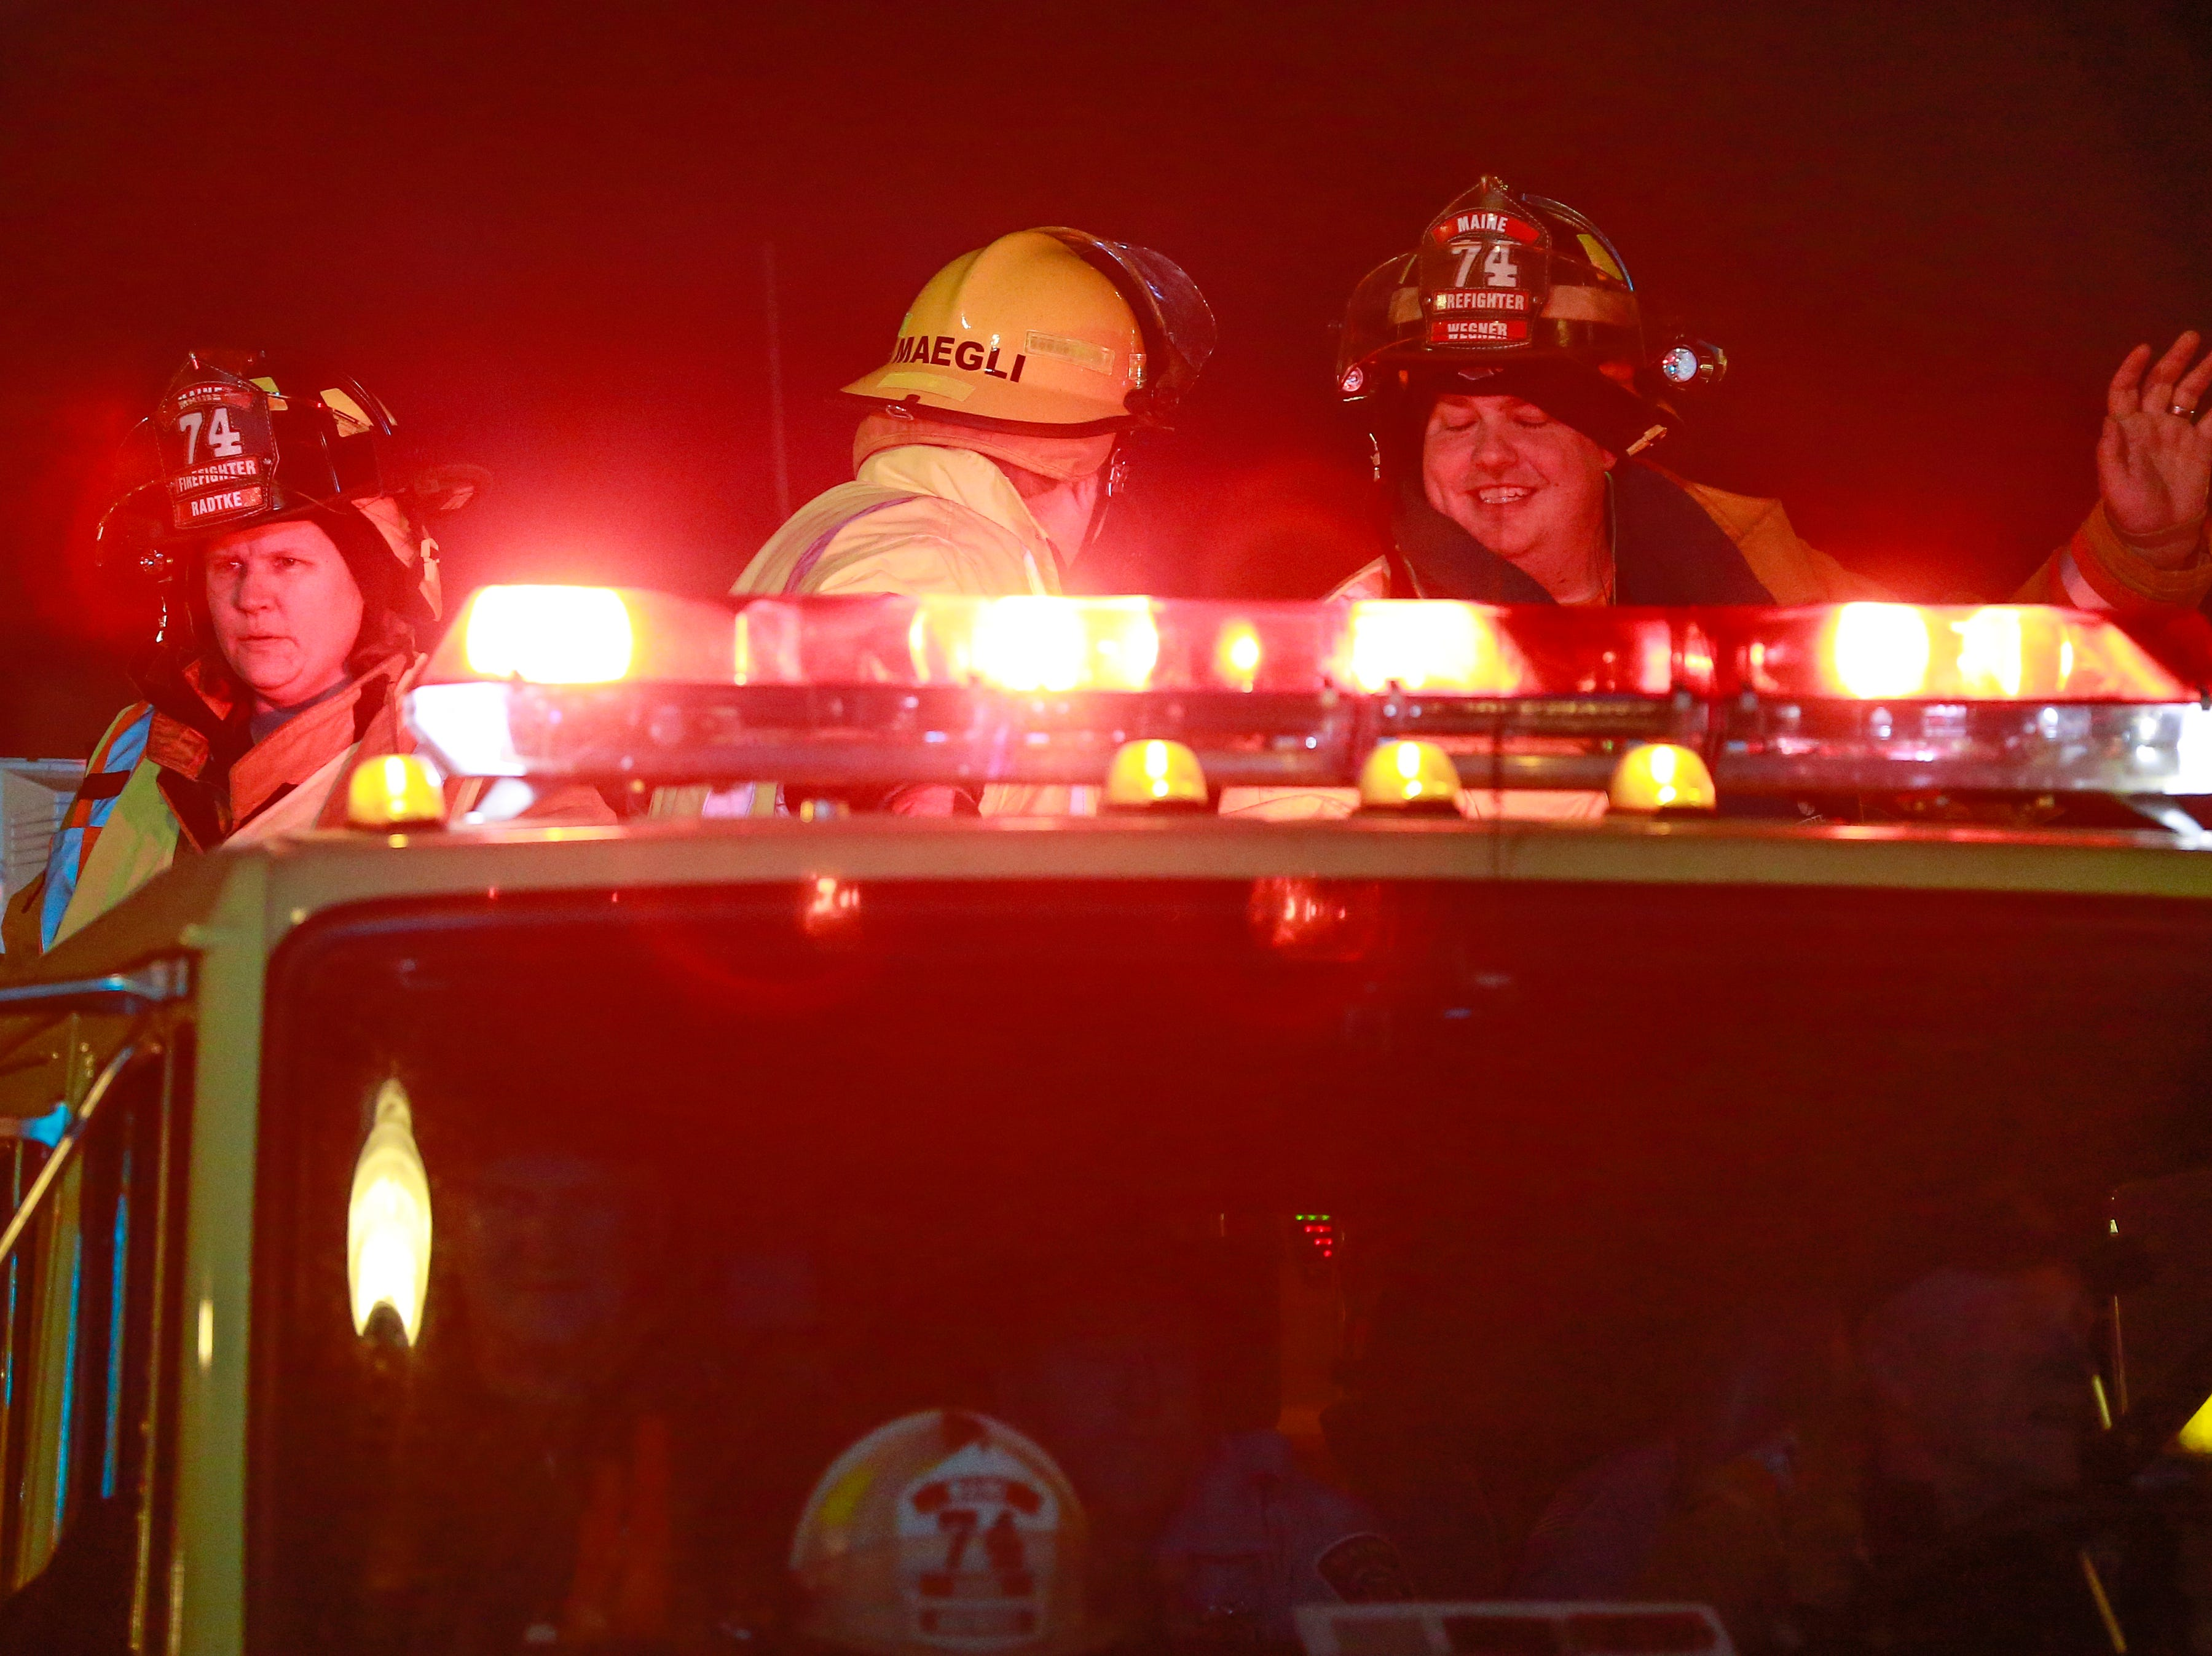 Firefighters wave at people during the Wausau Holiday Parade Friday night on Stewart Avenue in Wausau, Wisc. T'xer Zhon Kha/USA TODAY NETWORK-Wisconsin